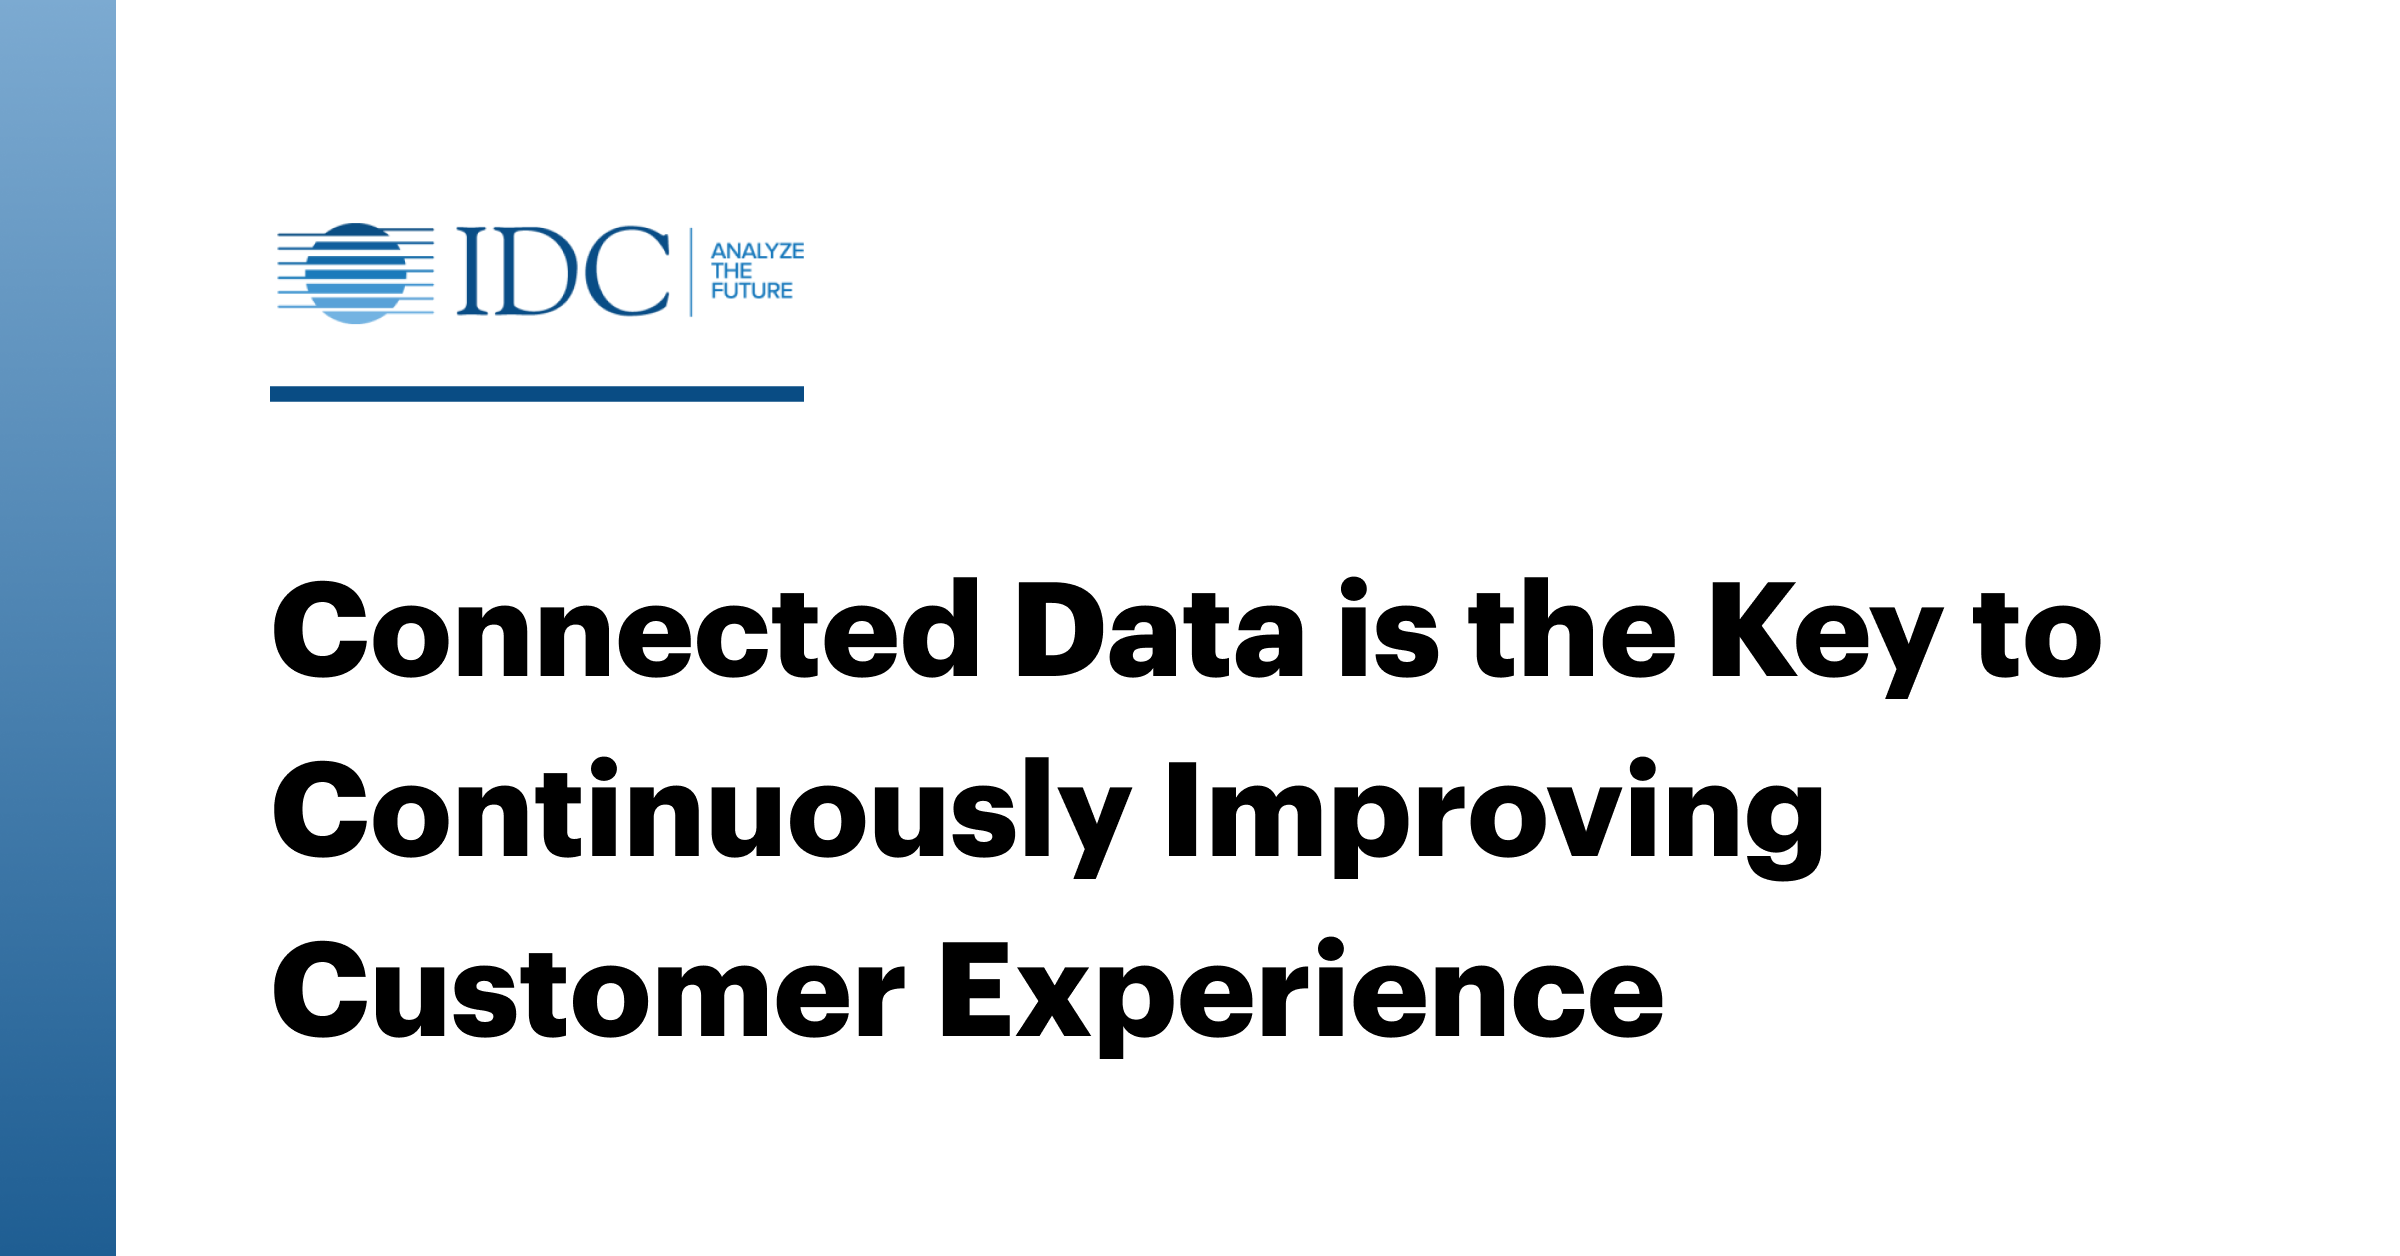 Connected Data is the Key to Continuously Improving Customer Experience